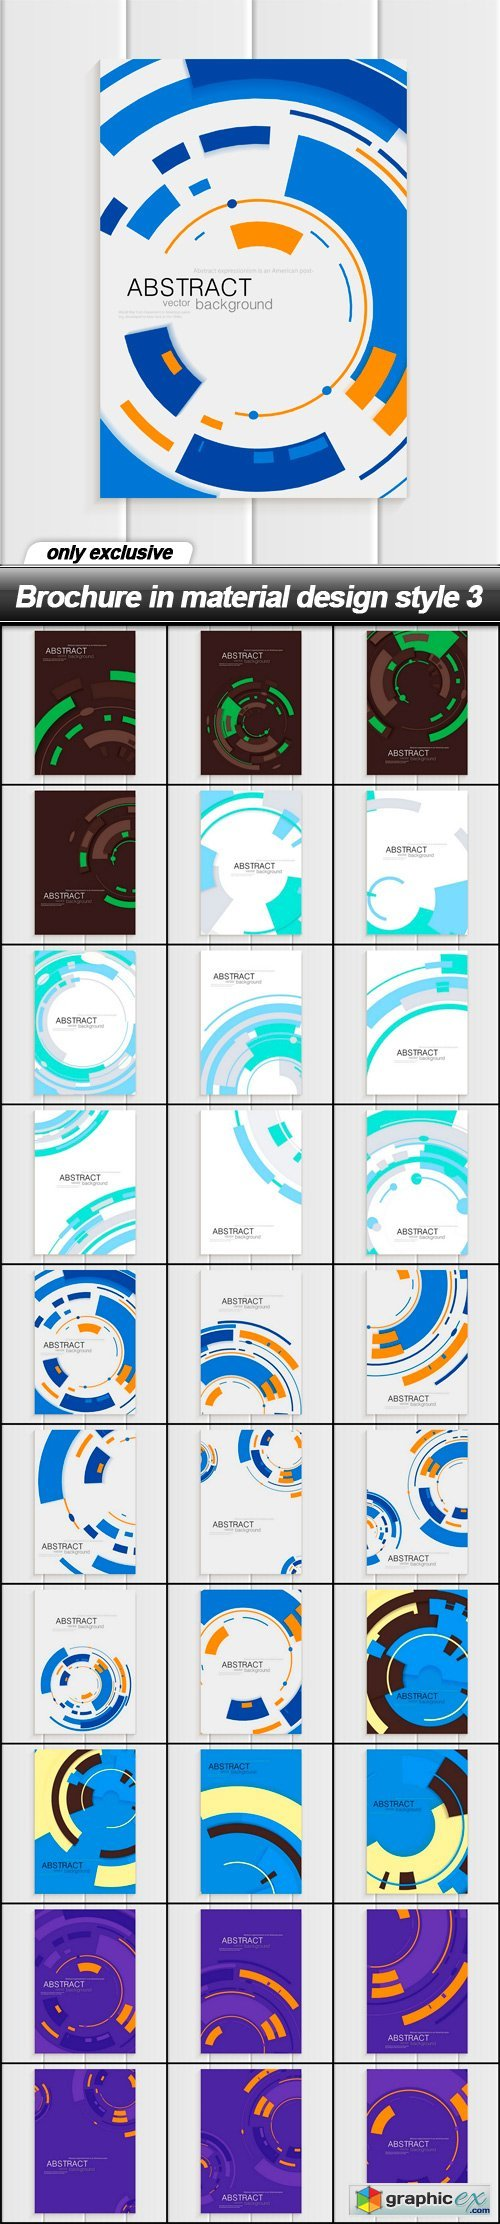 Brochure in material design style 3 - 30 EPS